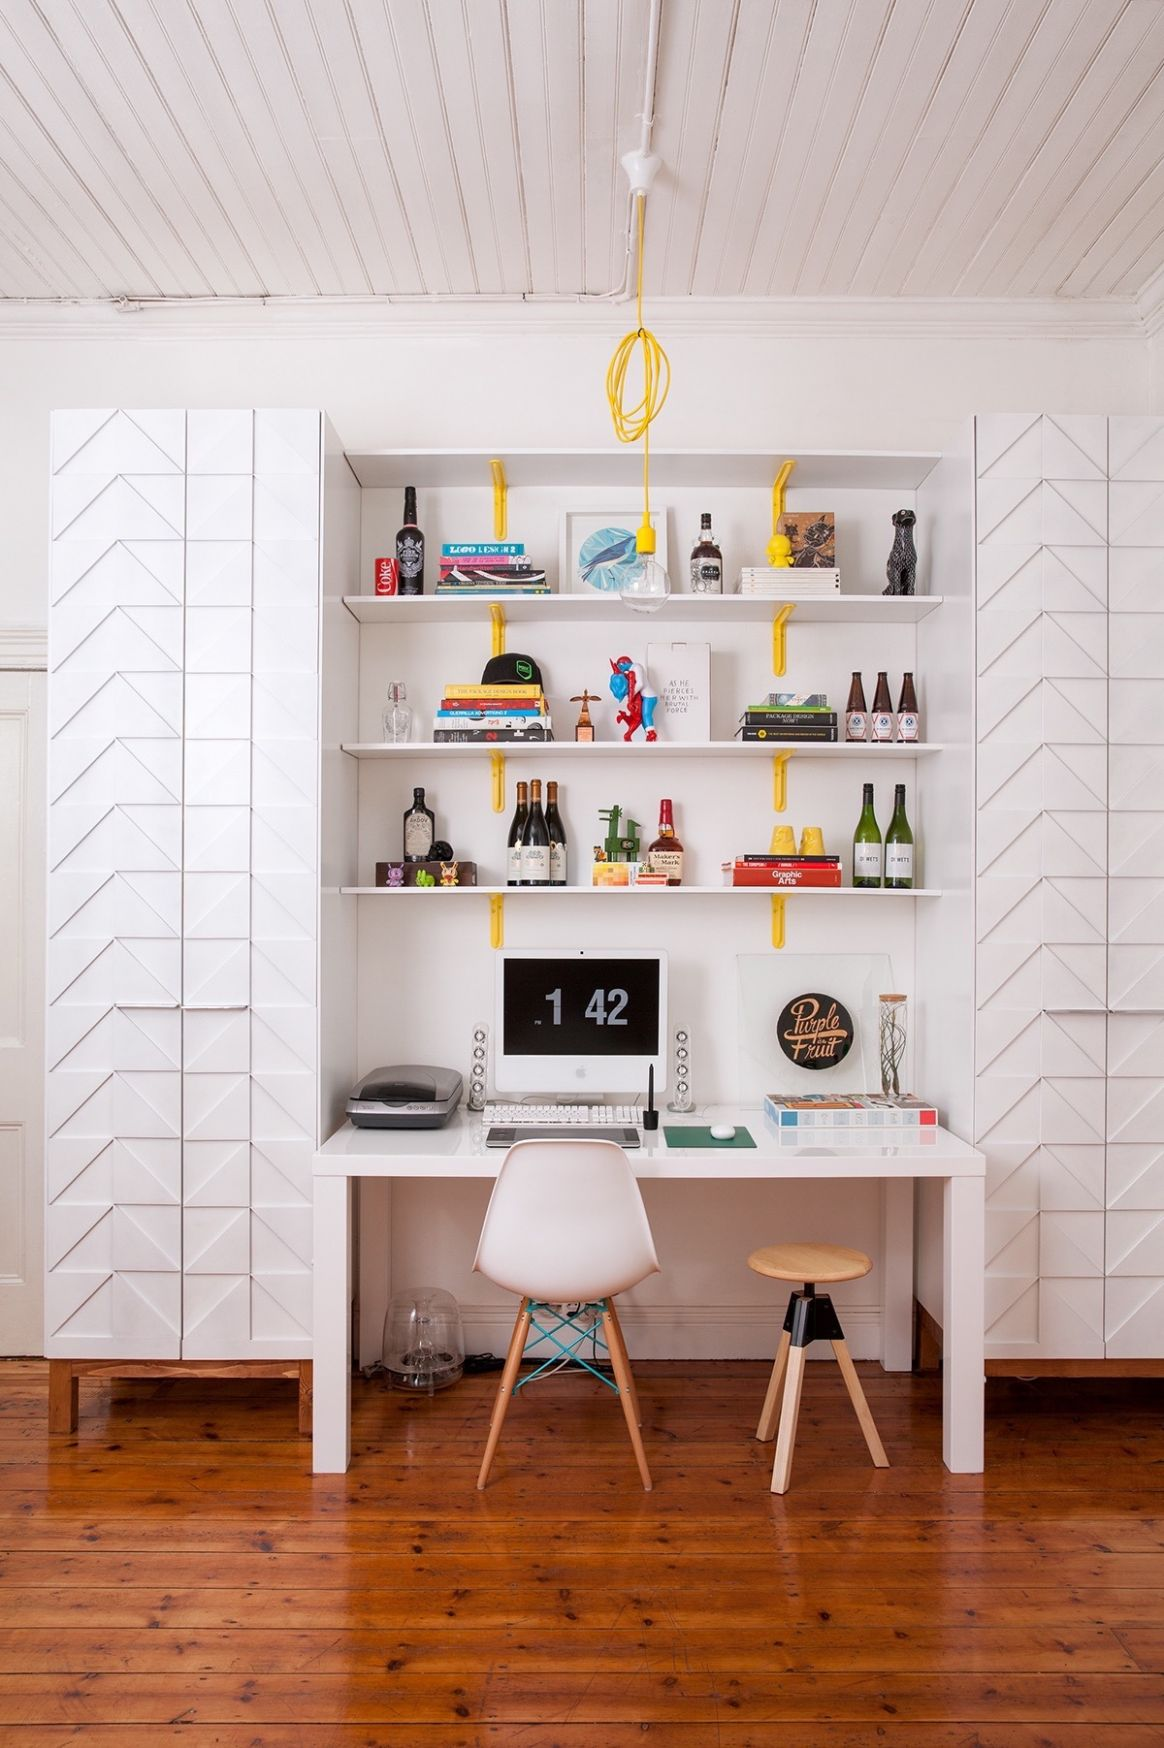 10 Modern Home Office Design Ideas For Inspiration - quirky home office ideas